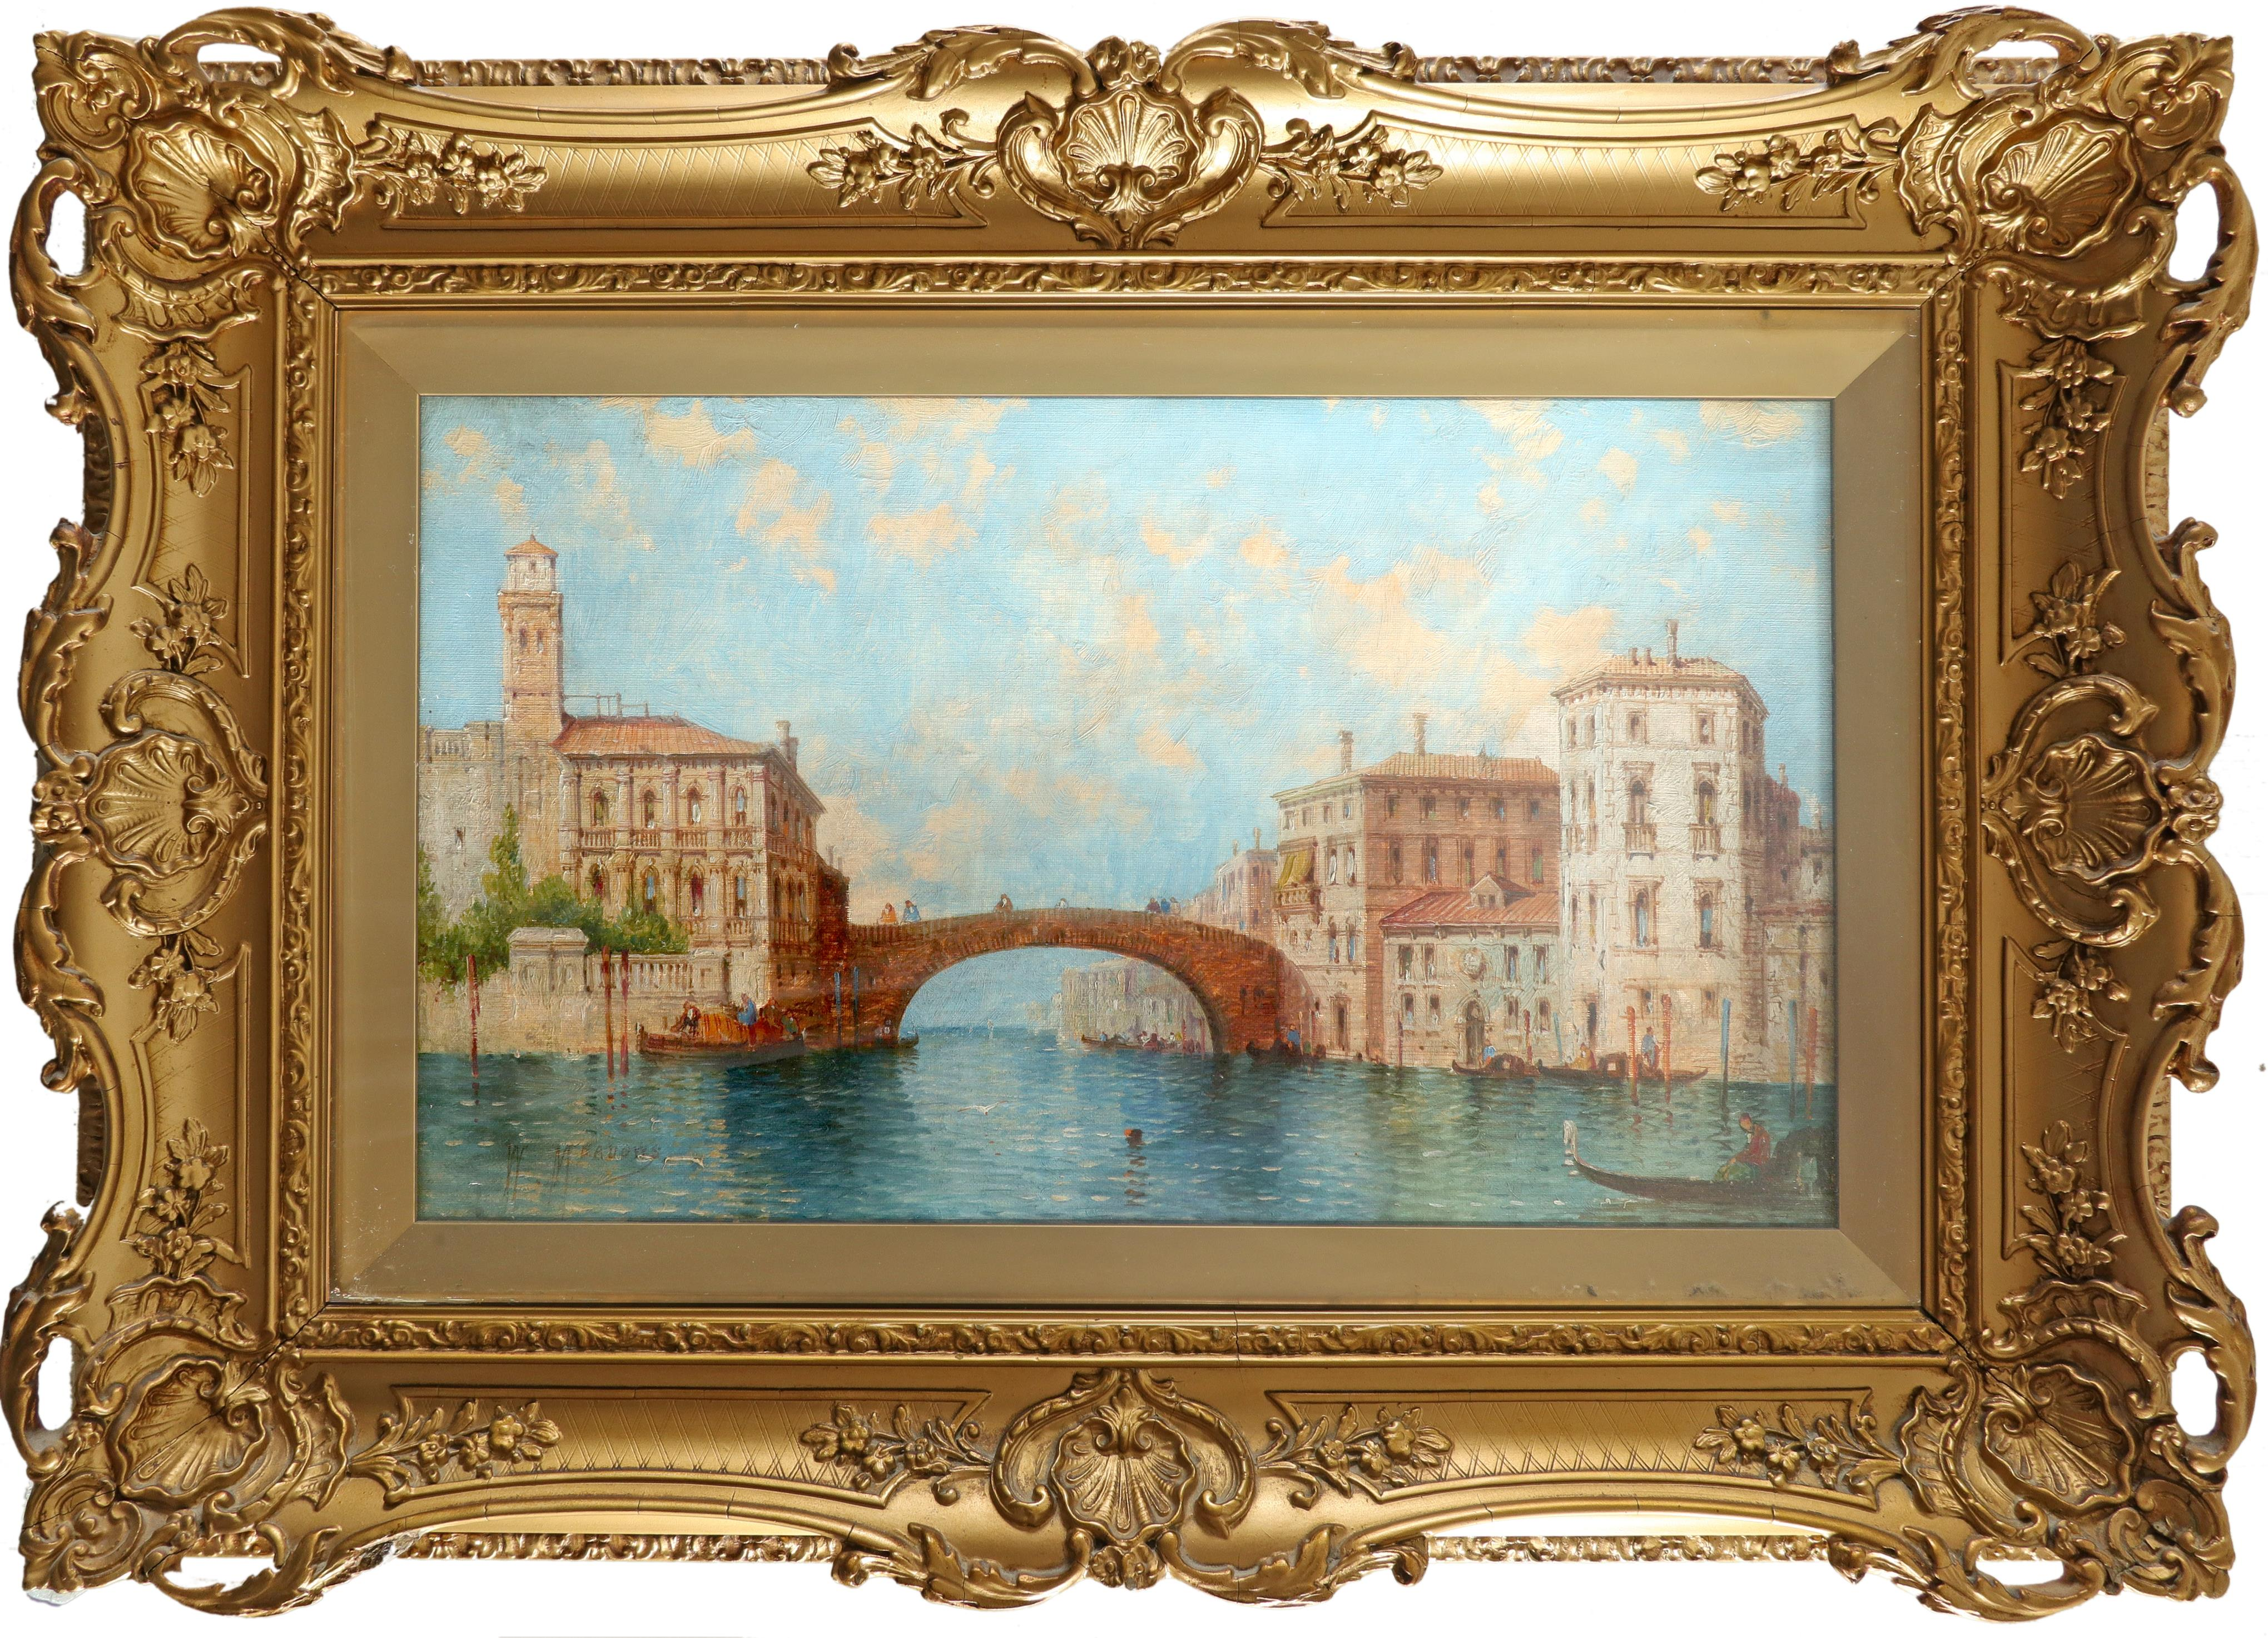 William Meadows (act.1870-1895) Entrance to a canal, Venice Signed W MEADOWS (lower left) Oil on - Image 2 of 3